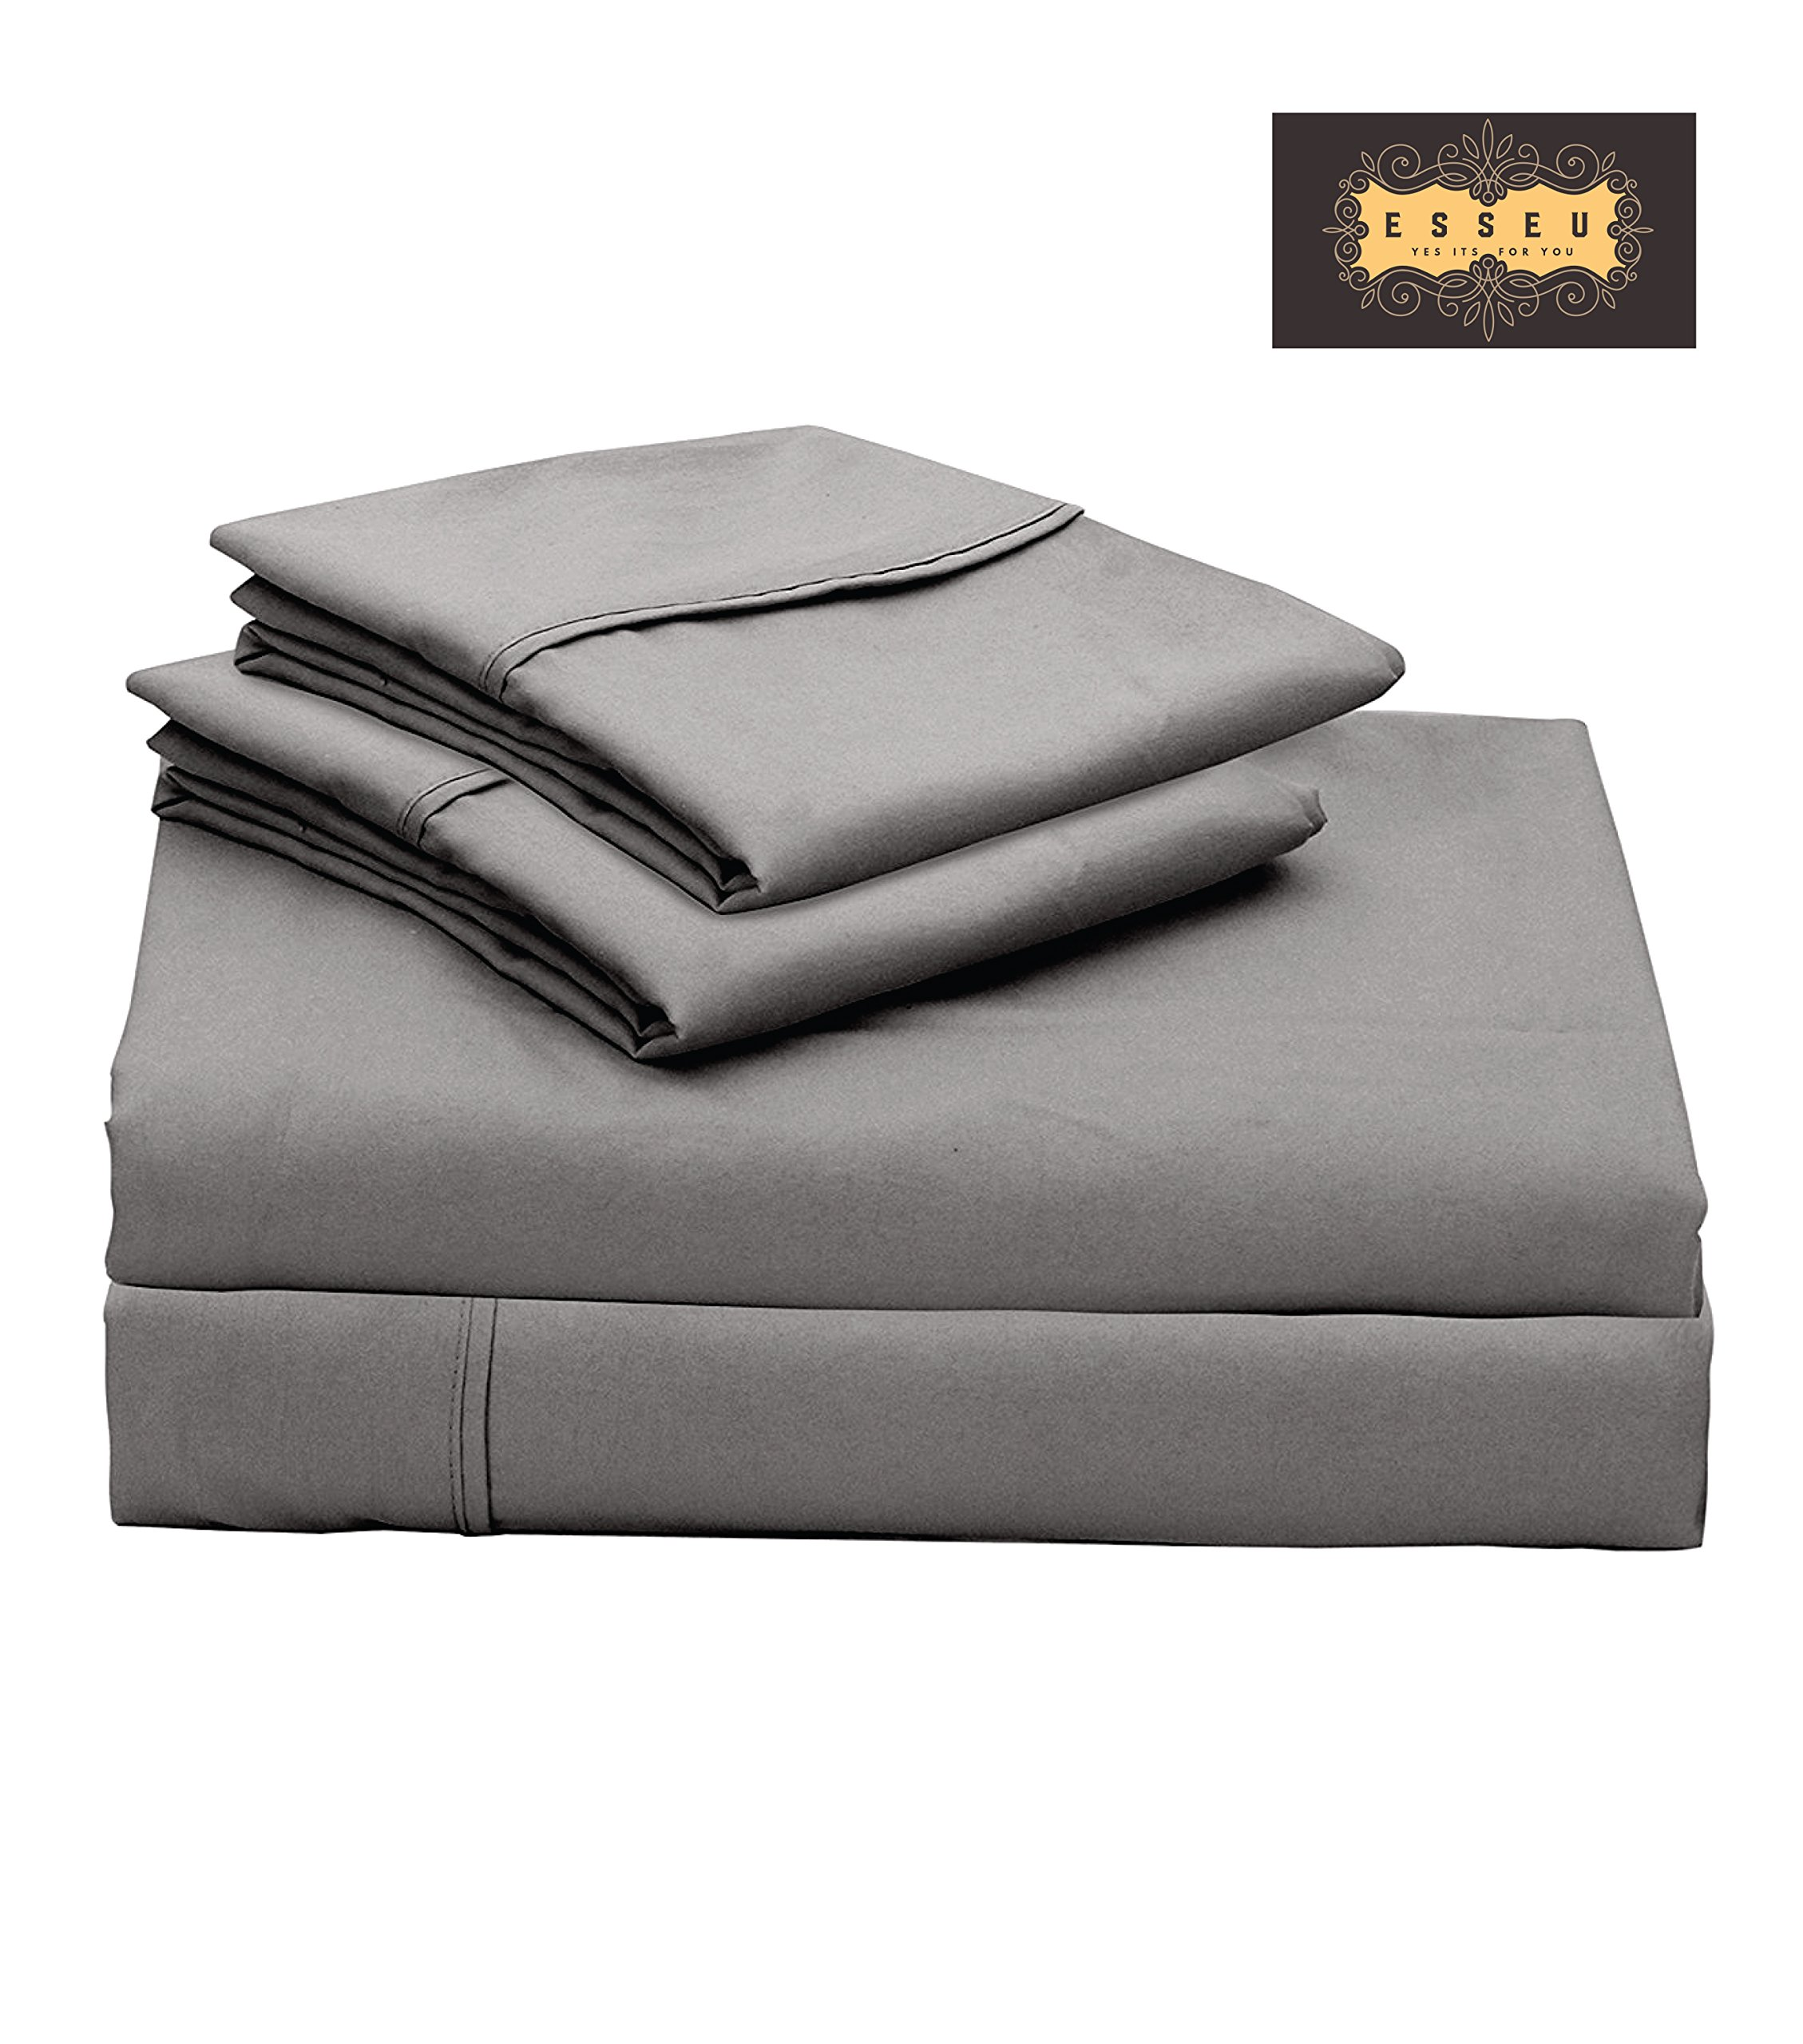 300 Thread Count 100% Cotton Sheet Set, Soft Sateen Weave,Queen Sheets, Deep Pockets,Home & Hotel Collection,Luxury Bedding-Bestseller- Super Sale 100% Cotton, Elephant Grey by ESSEU